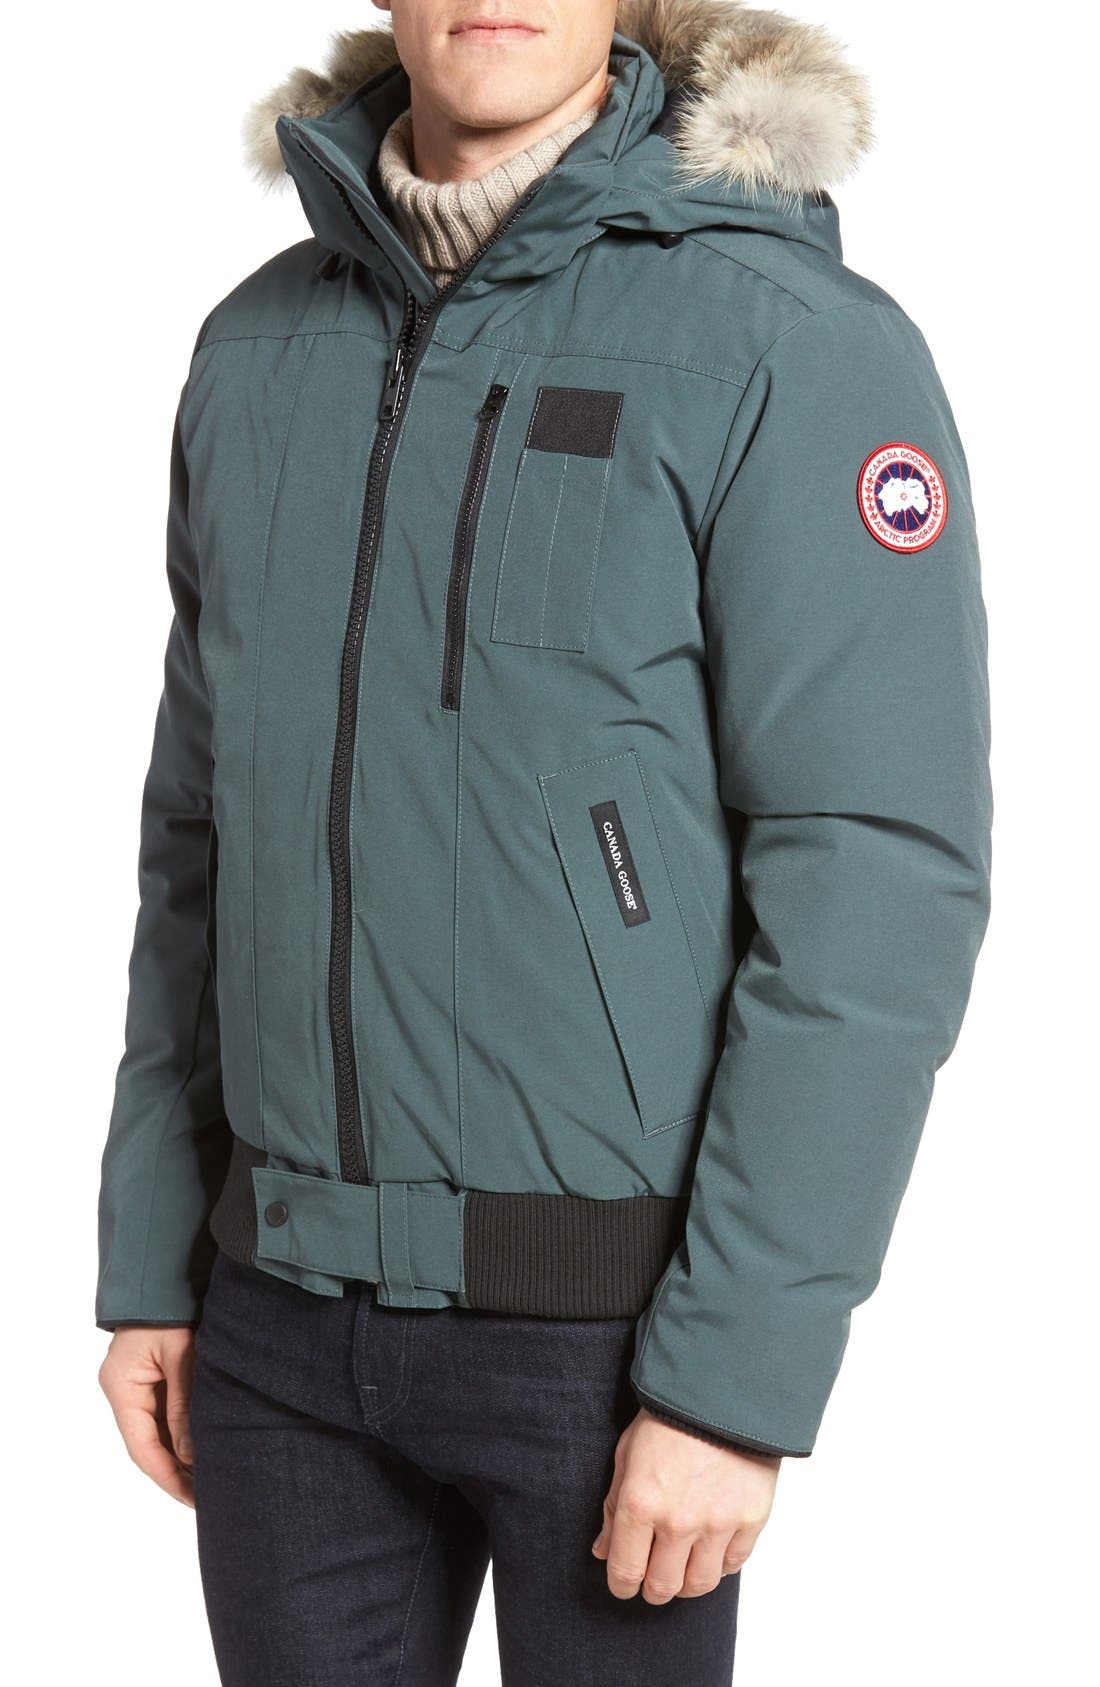 CANADA GOOSE 'Borden' Regular Fit Bomber Jacket with